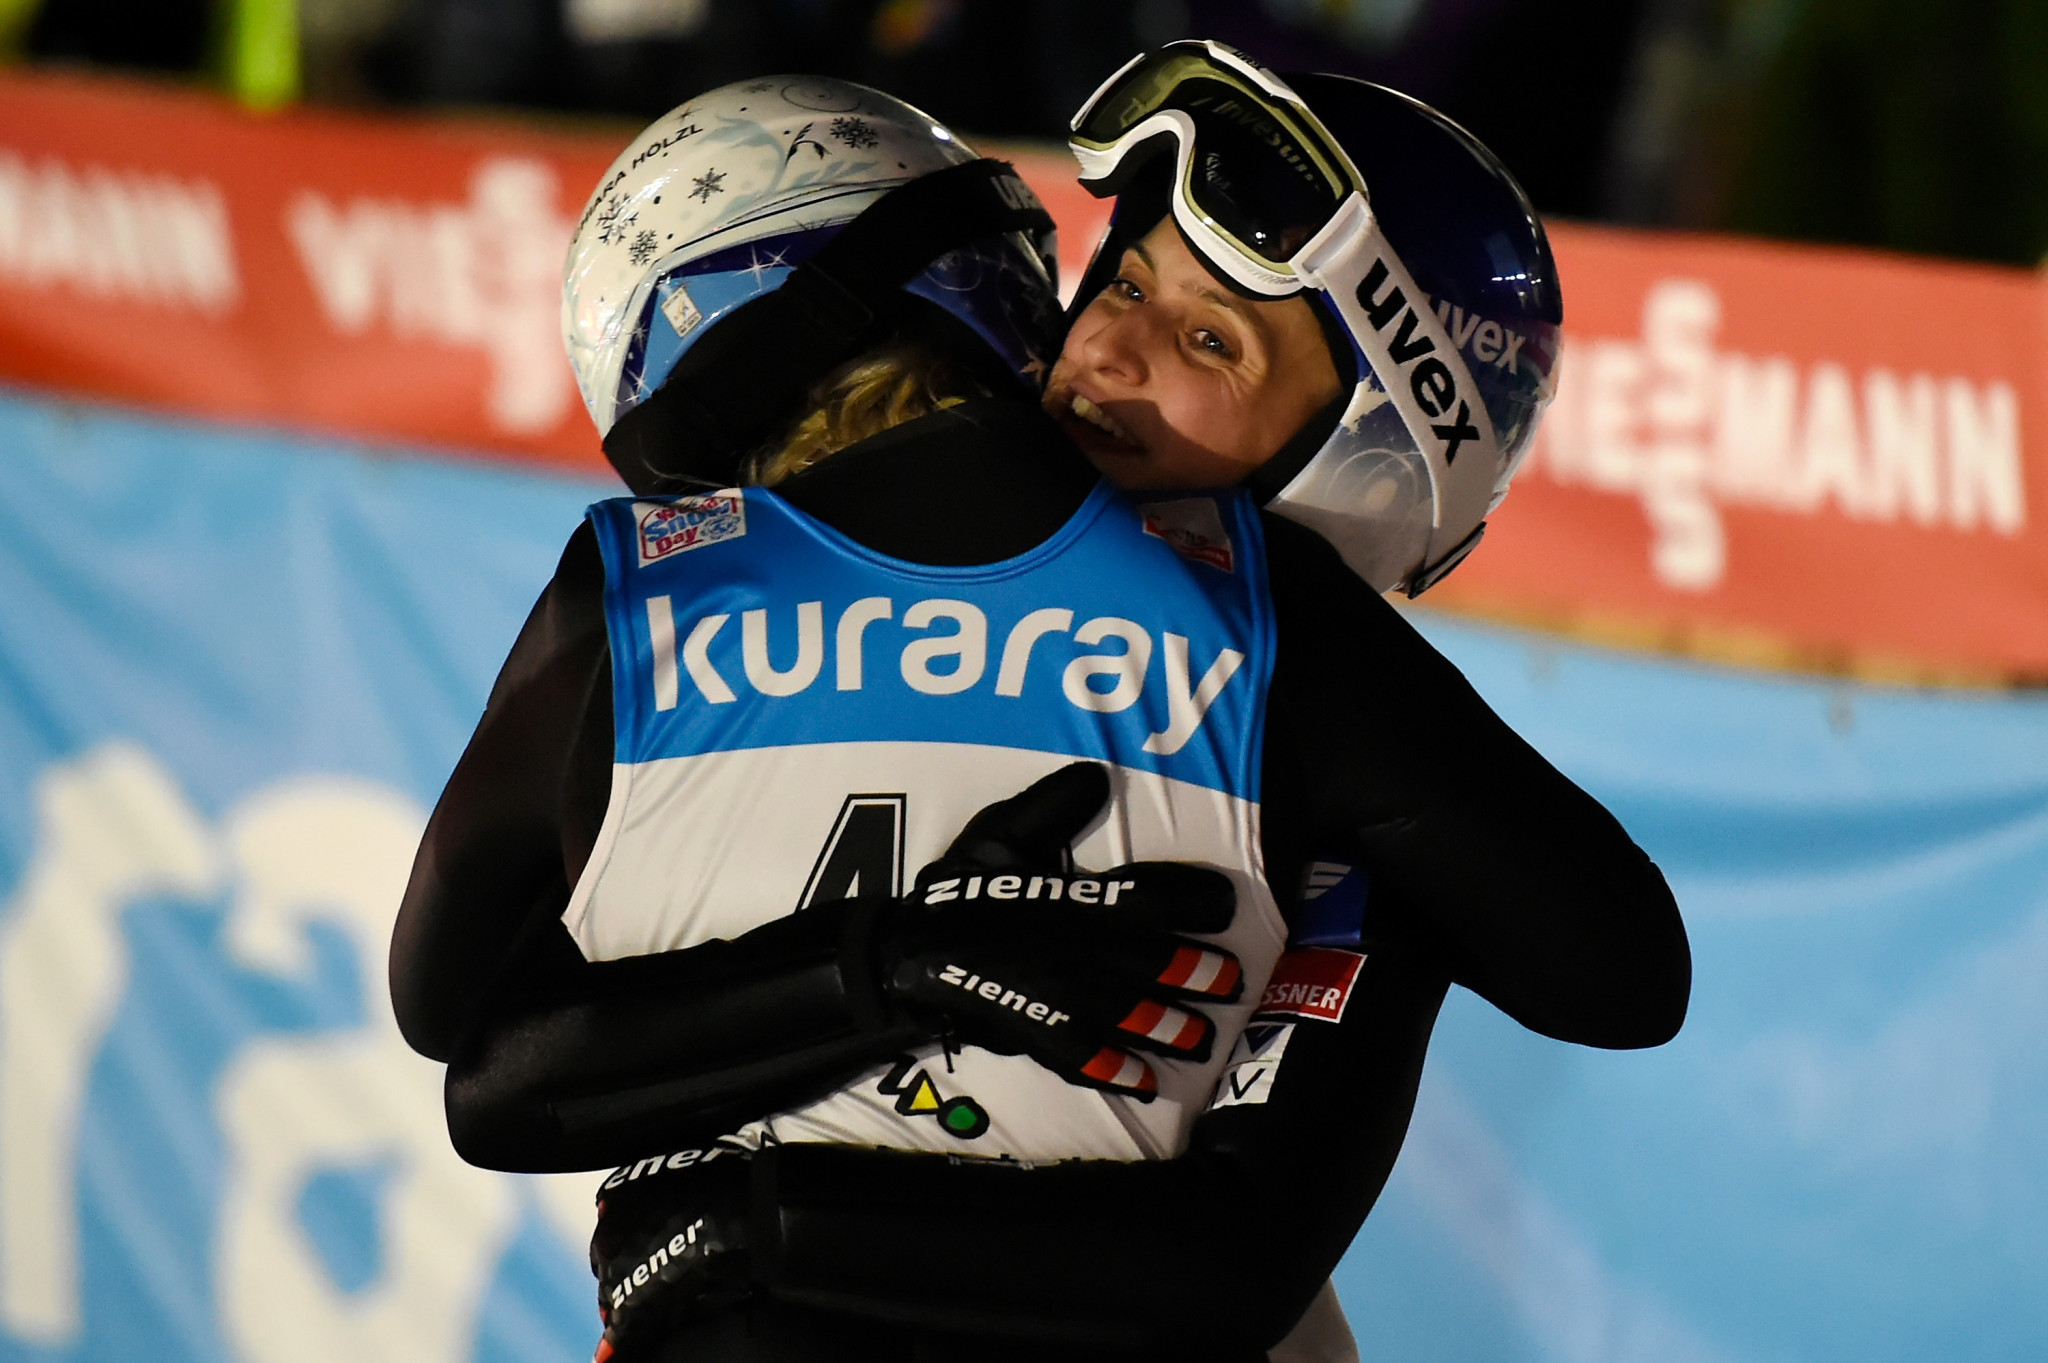 Austria narrowly beat hosts Slovenia in women's FIS Ski Jumping World Cup team event